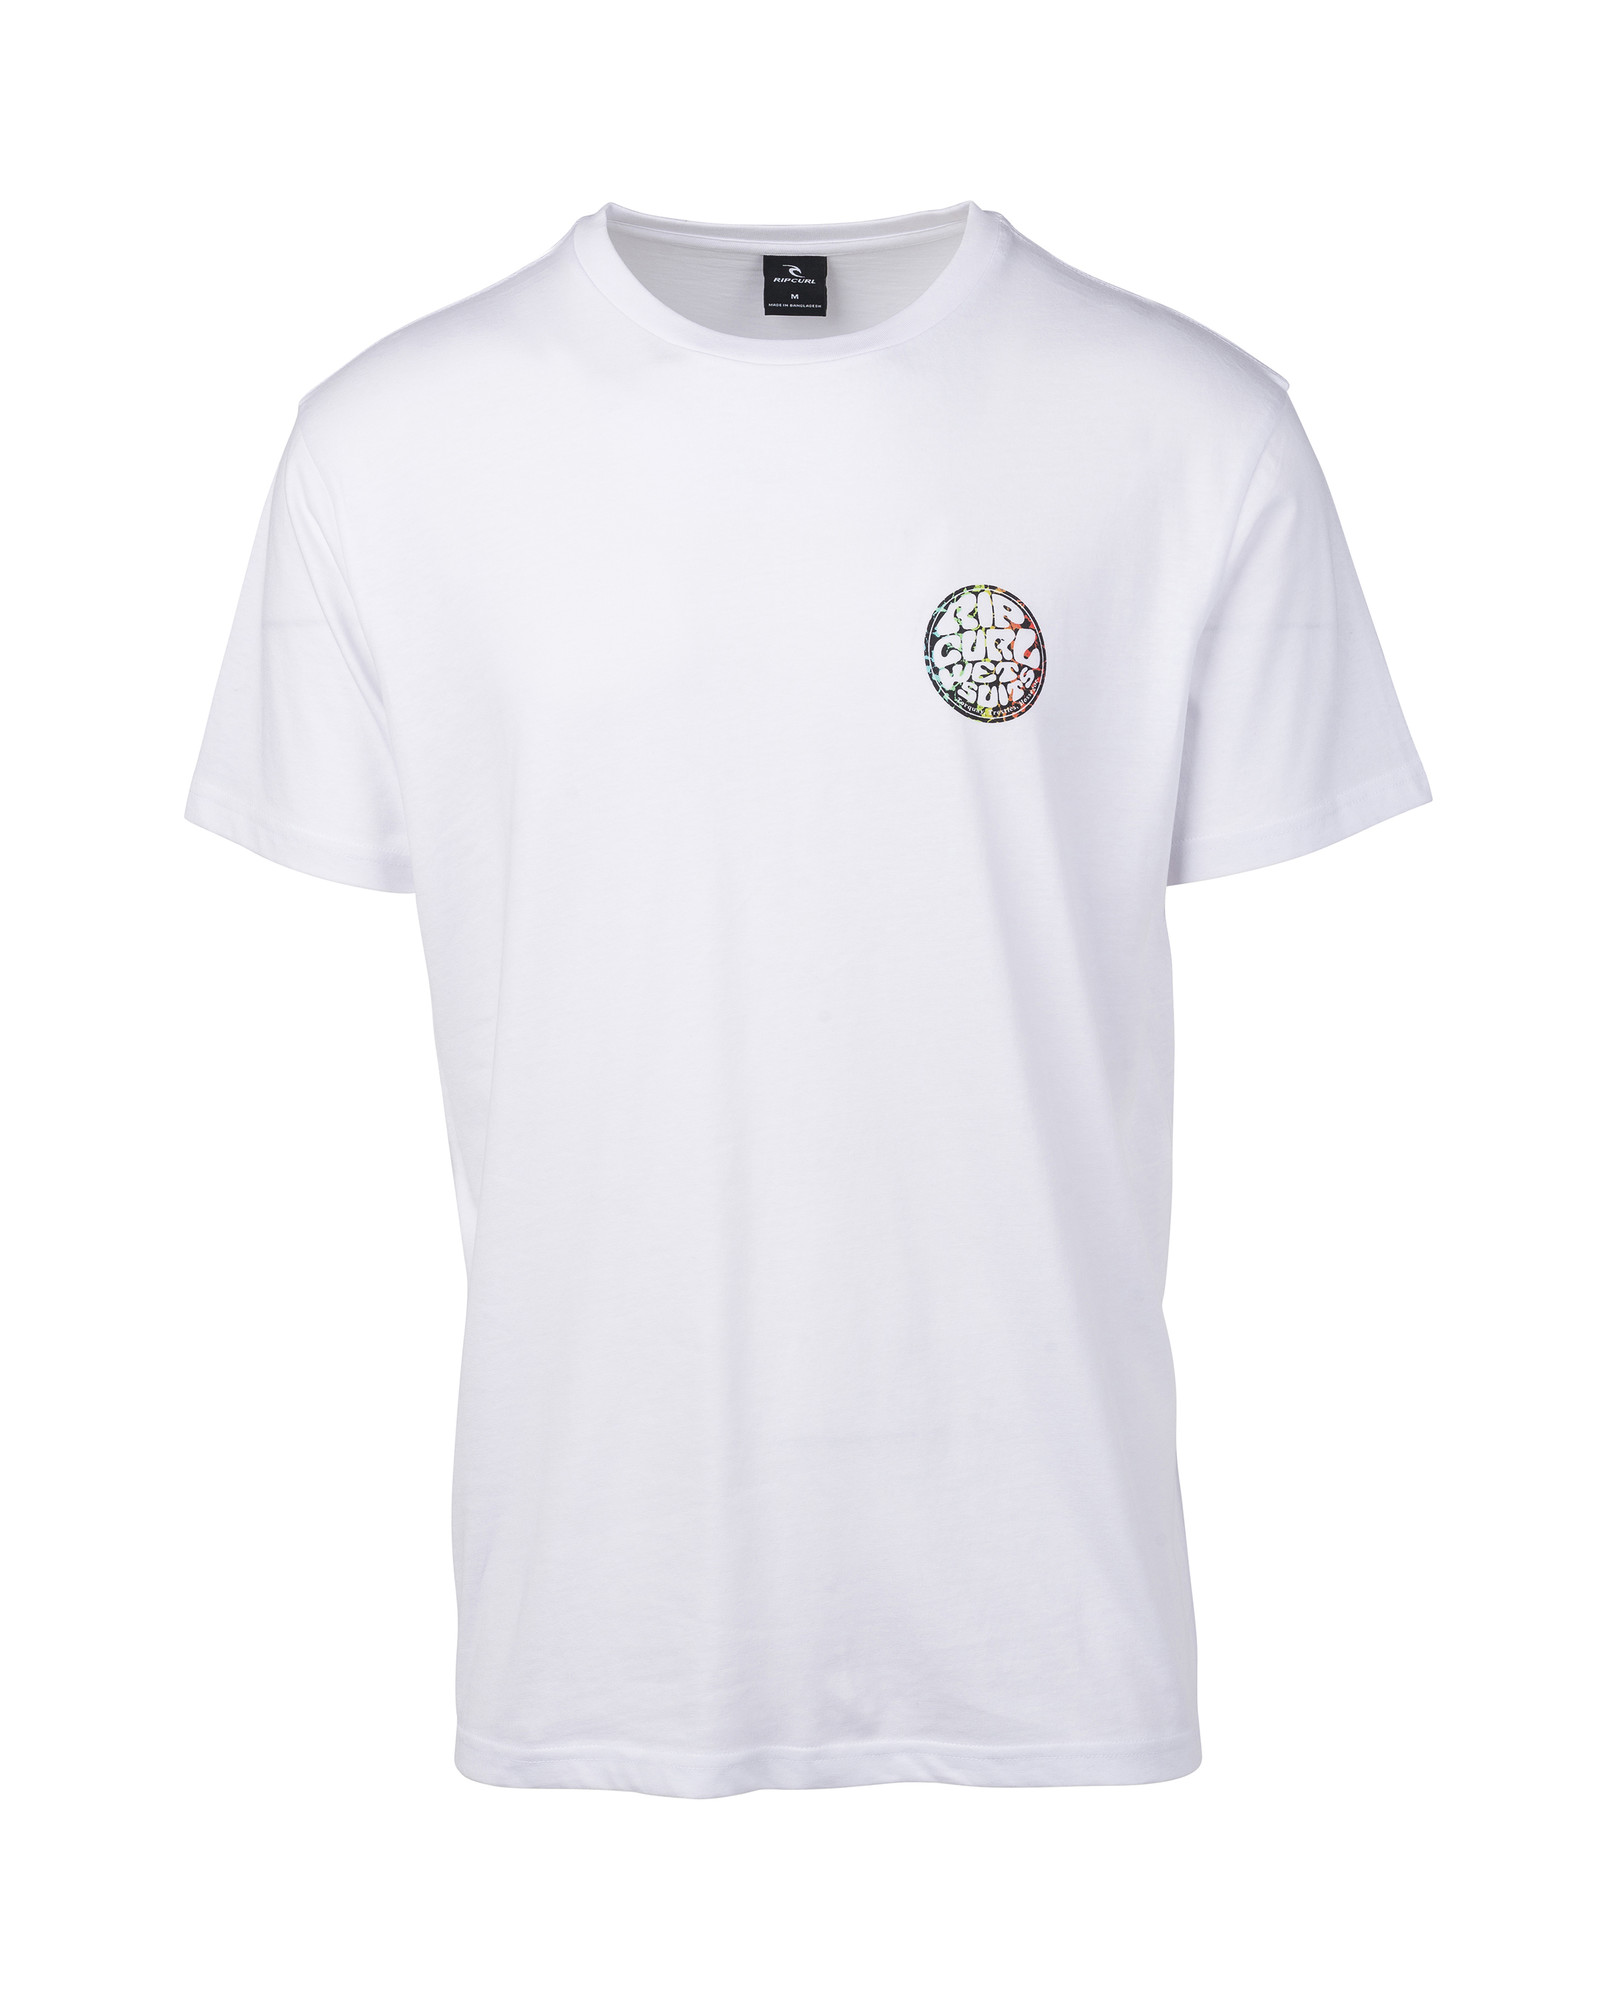 84028cdfcd0f Rip curl RIDERS SS T-Shirt 2019 optical white | Warehouse One